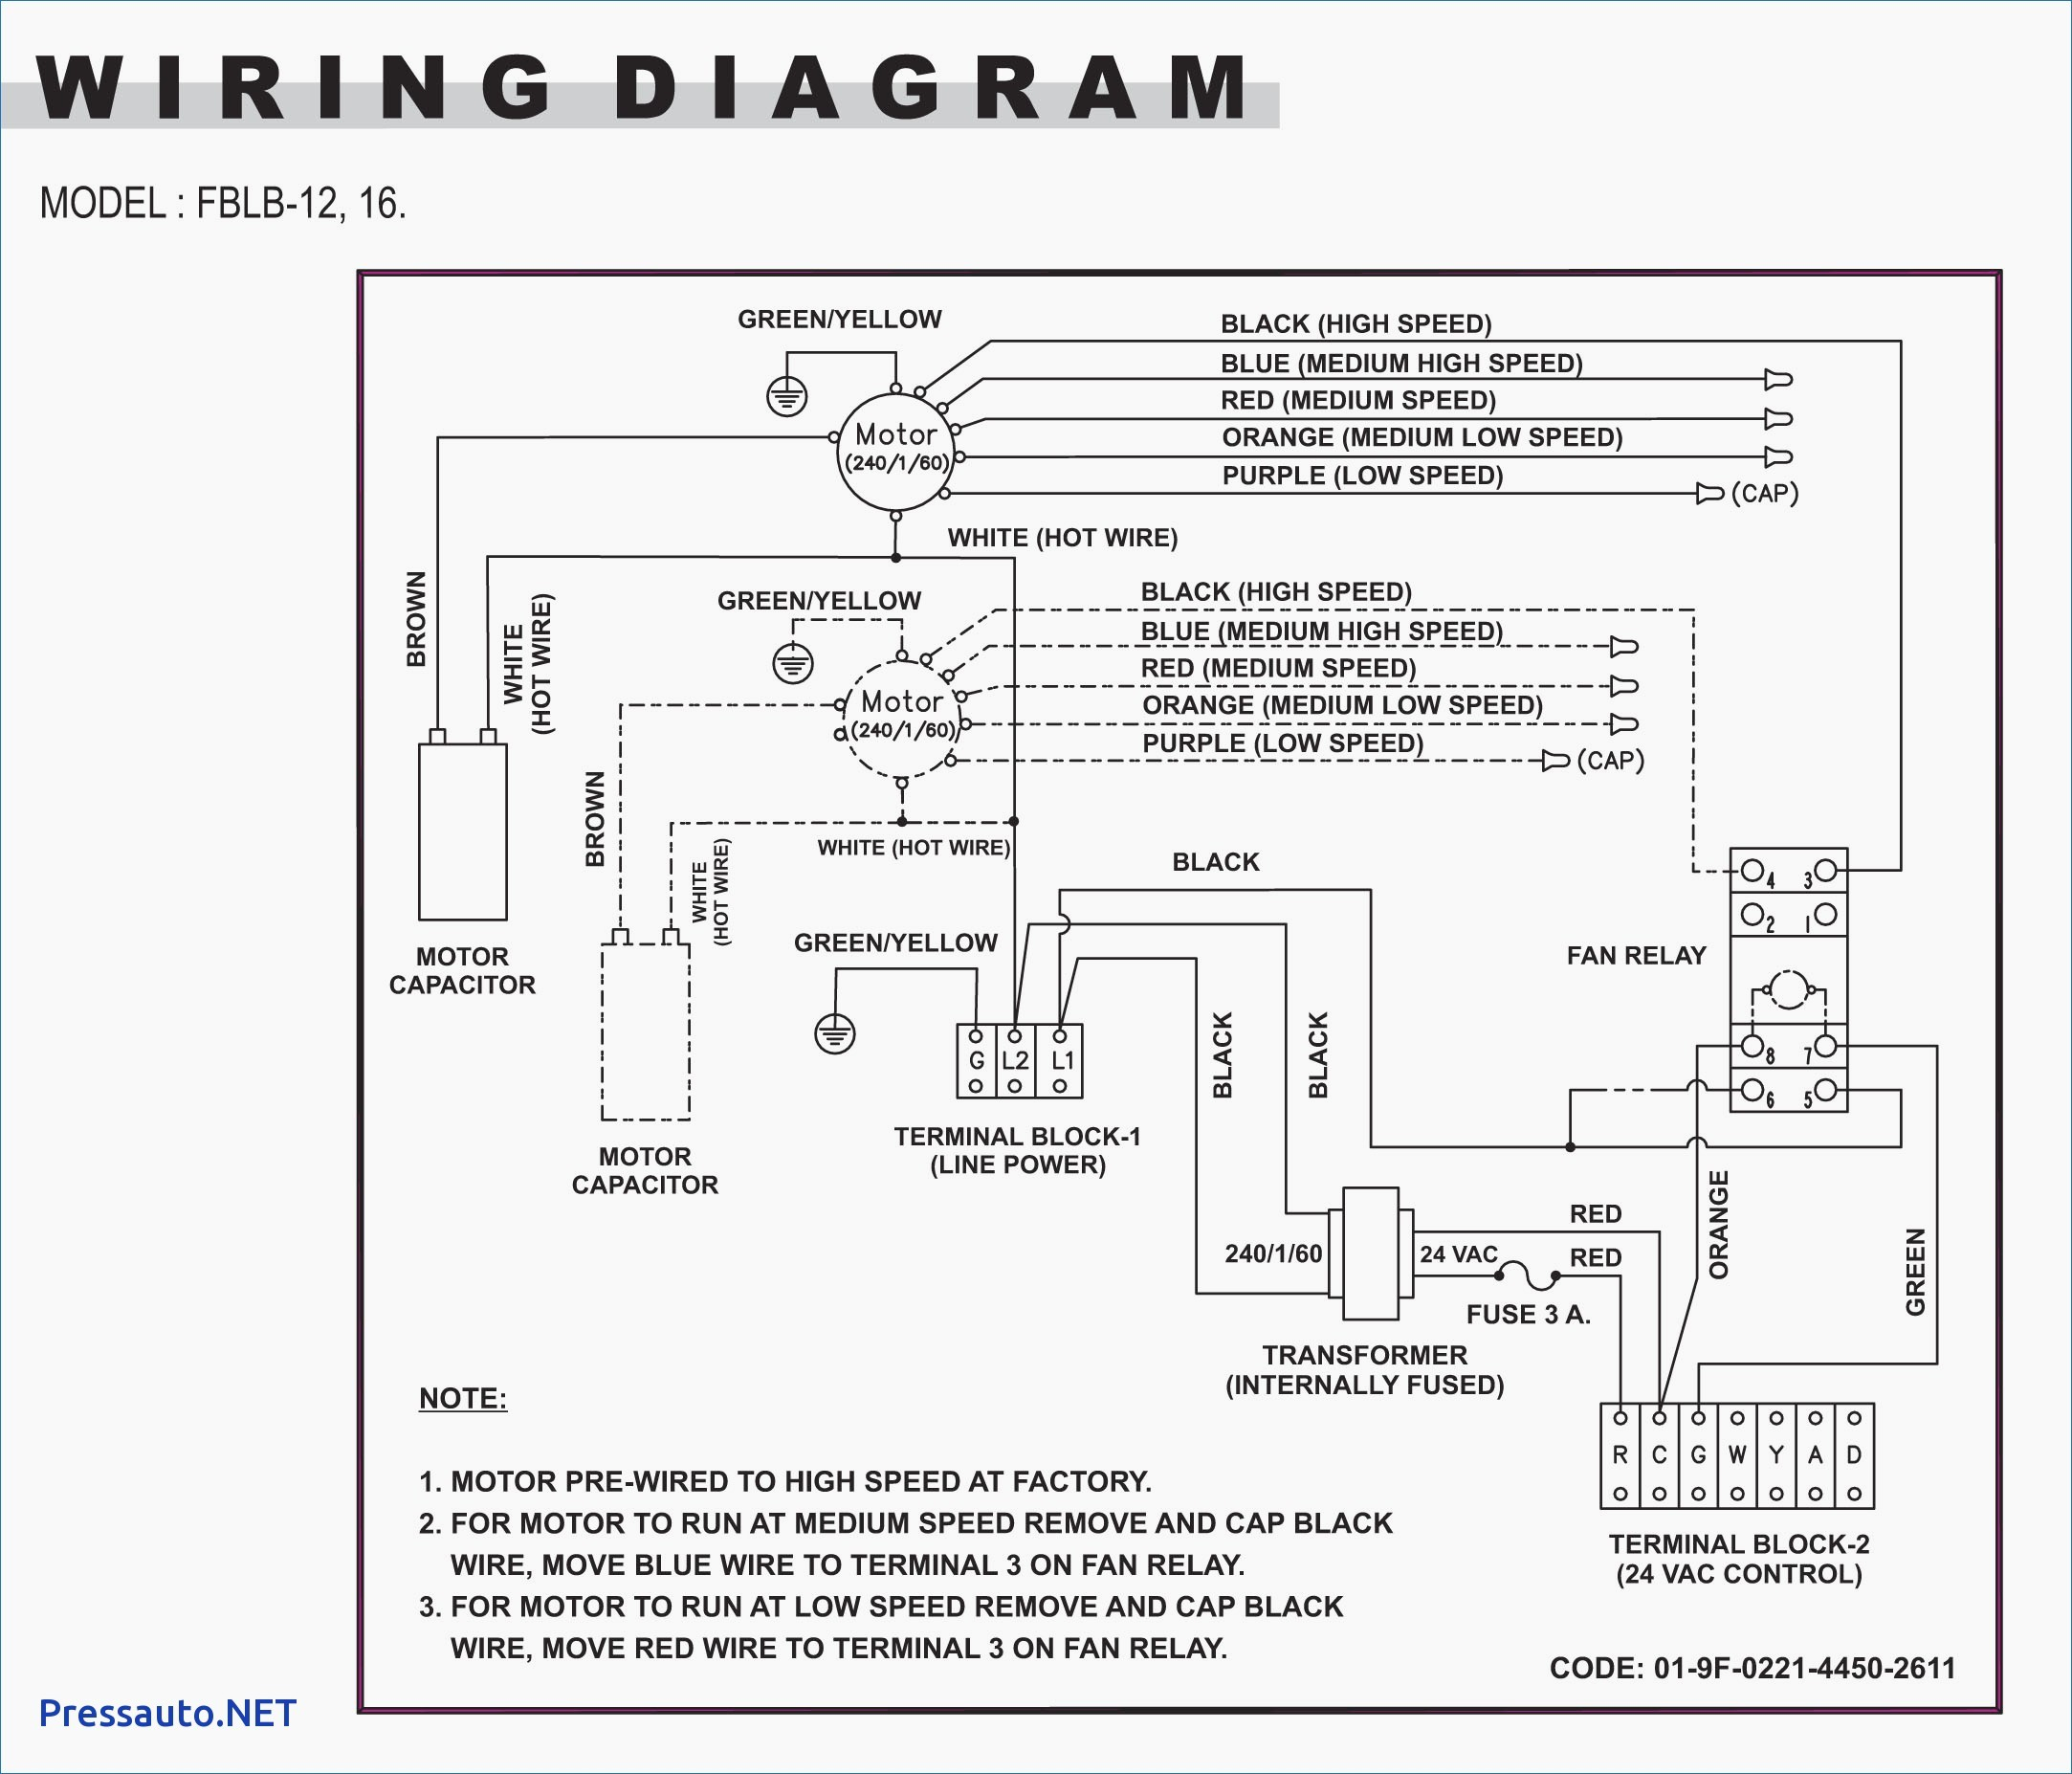 gas heater wiring diagram 480 volt 3 phase heater wiring diagram wiring diagram e8  480 volt 3 phase heater wiring diagram